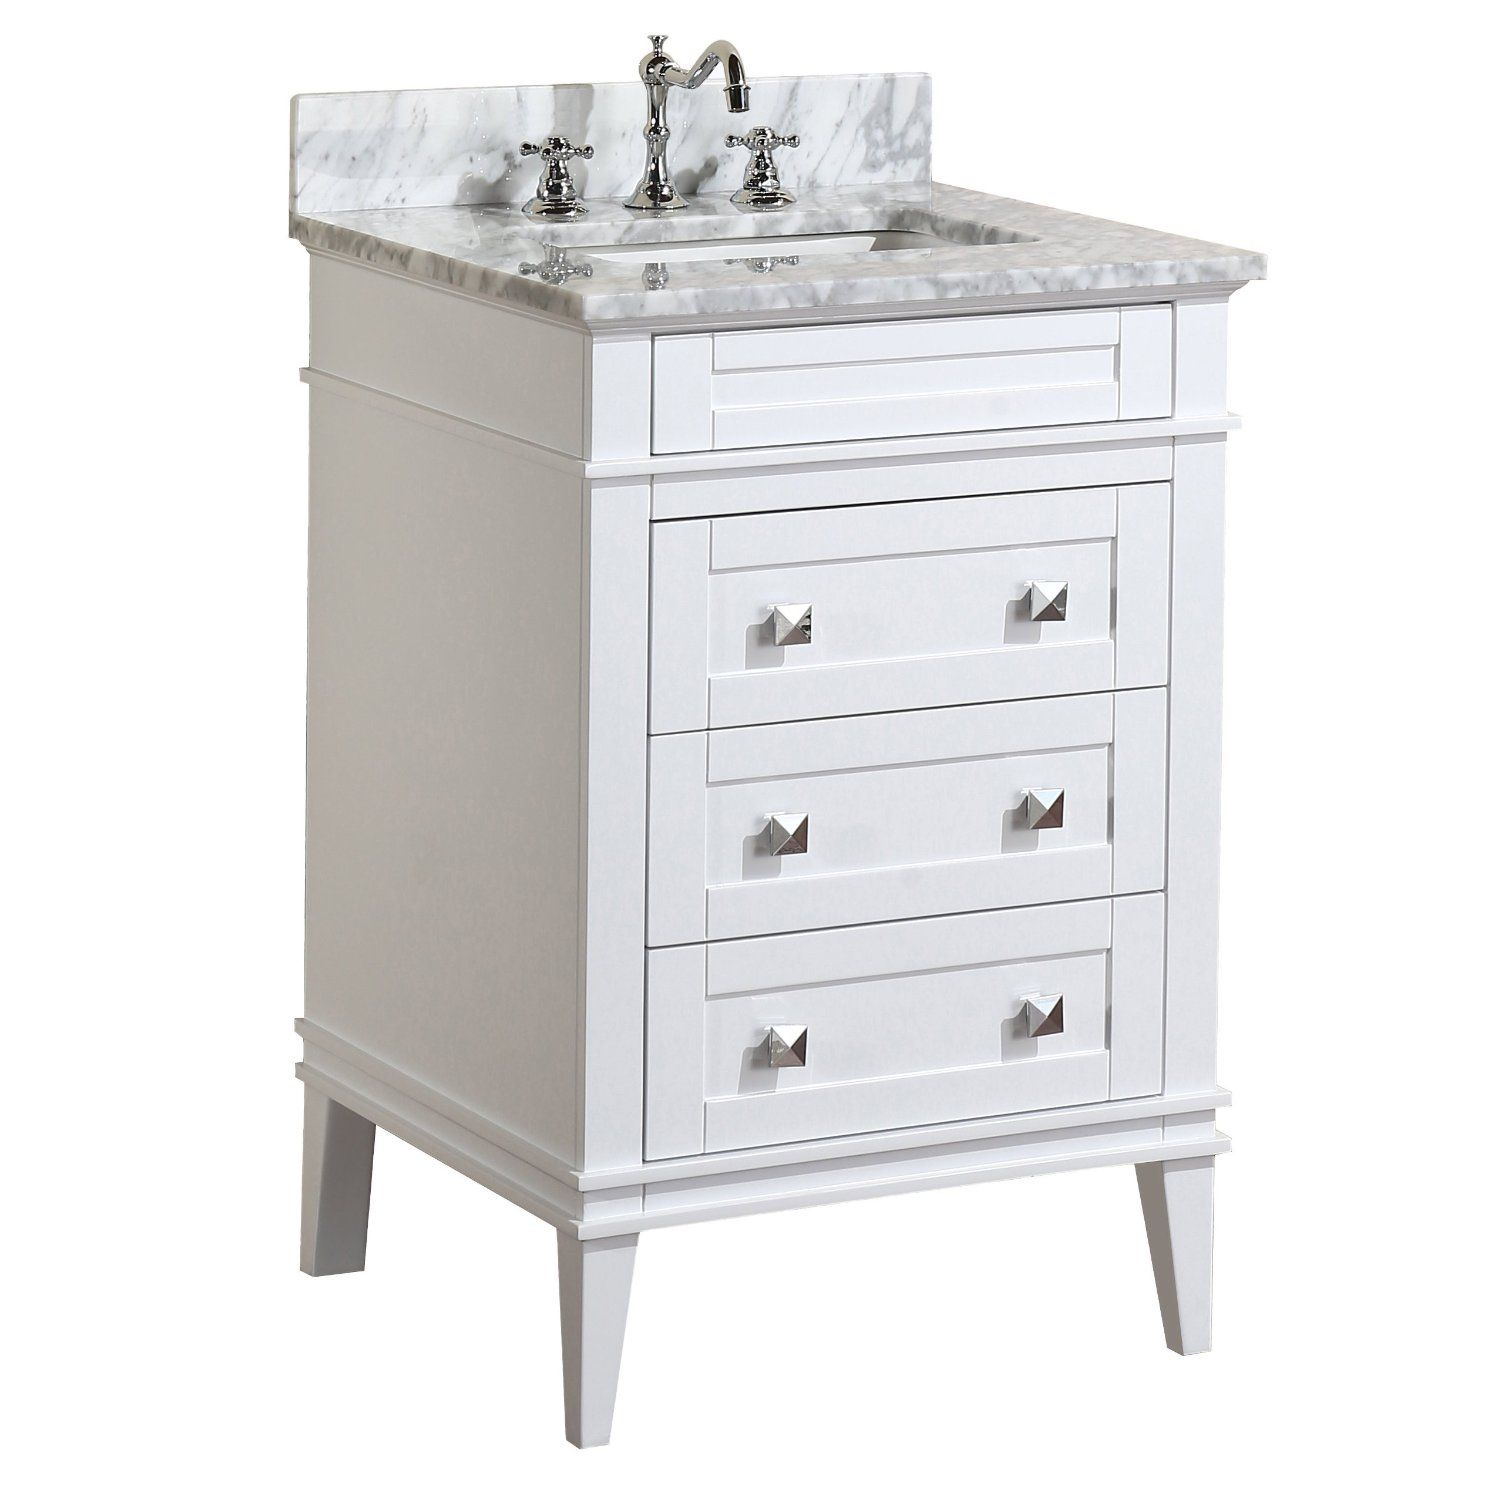 Eleanor 24 Inch Bathroom Vanity Carrara White Includes A White Cabinet Soft Close Drawers A